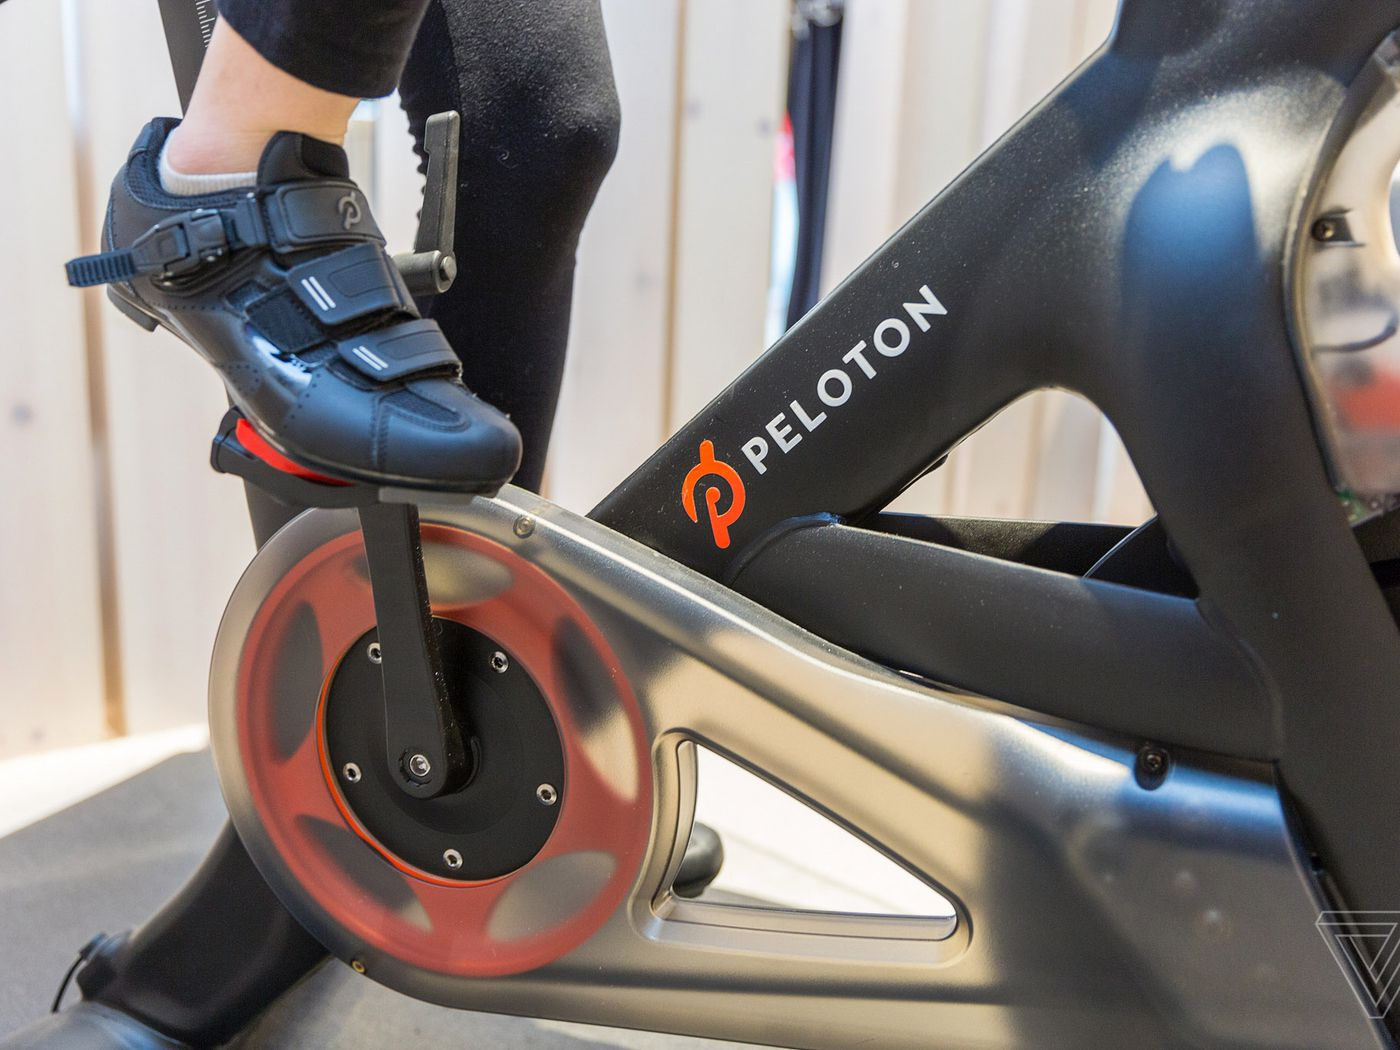 Peloton owners are pissed about bad music after copyright